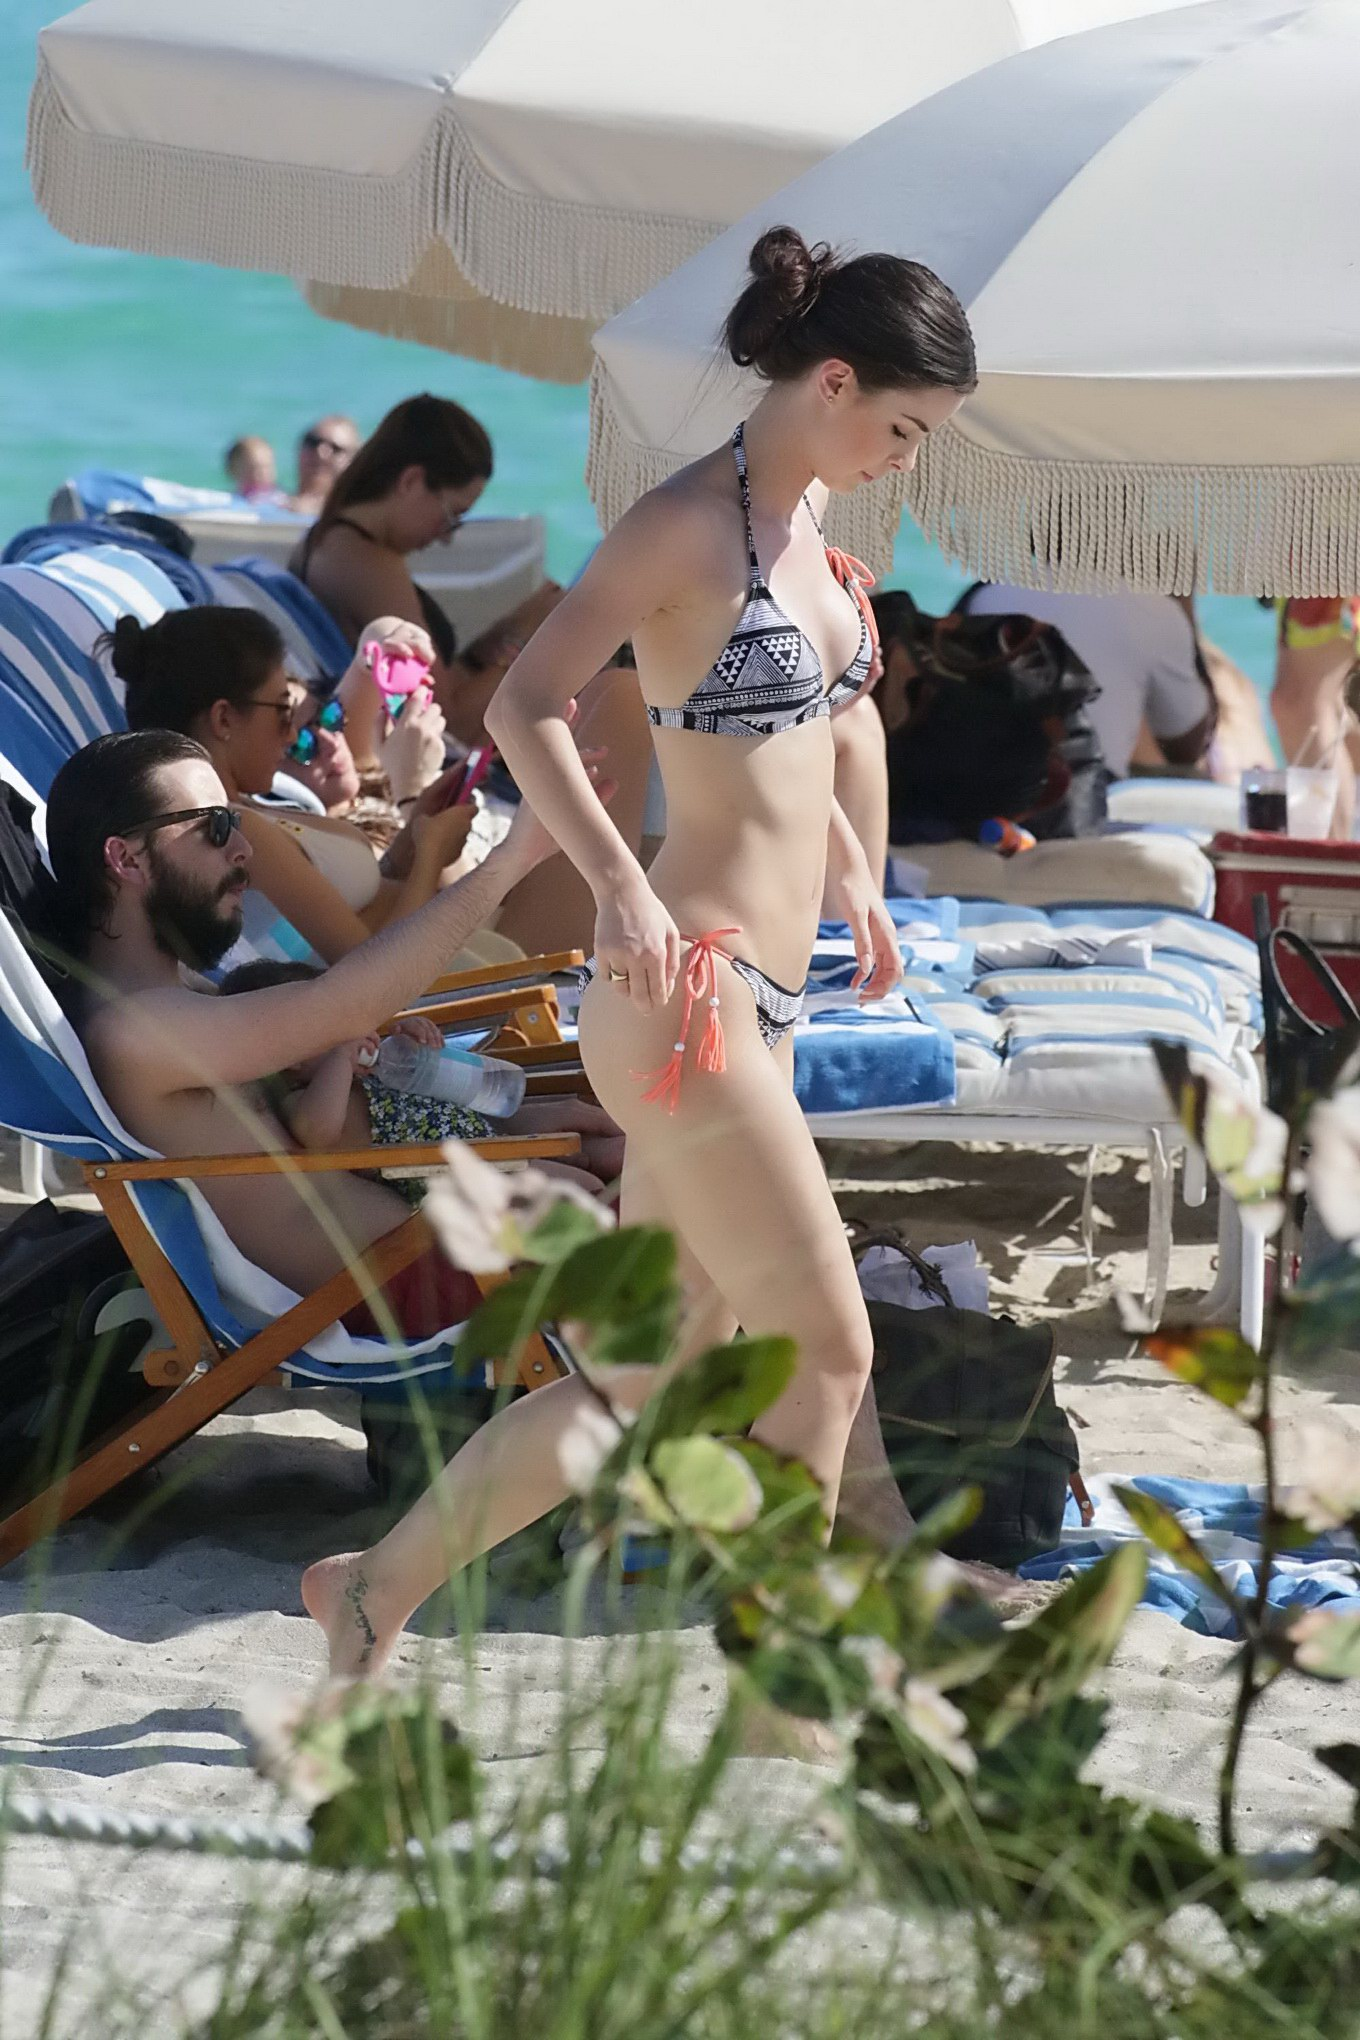 off her hot body in skimpy monochrome bikini at the beach in miami